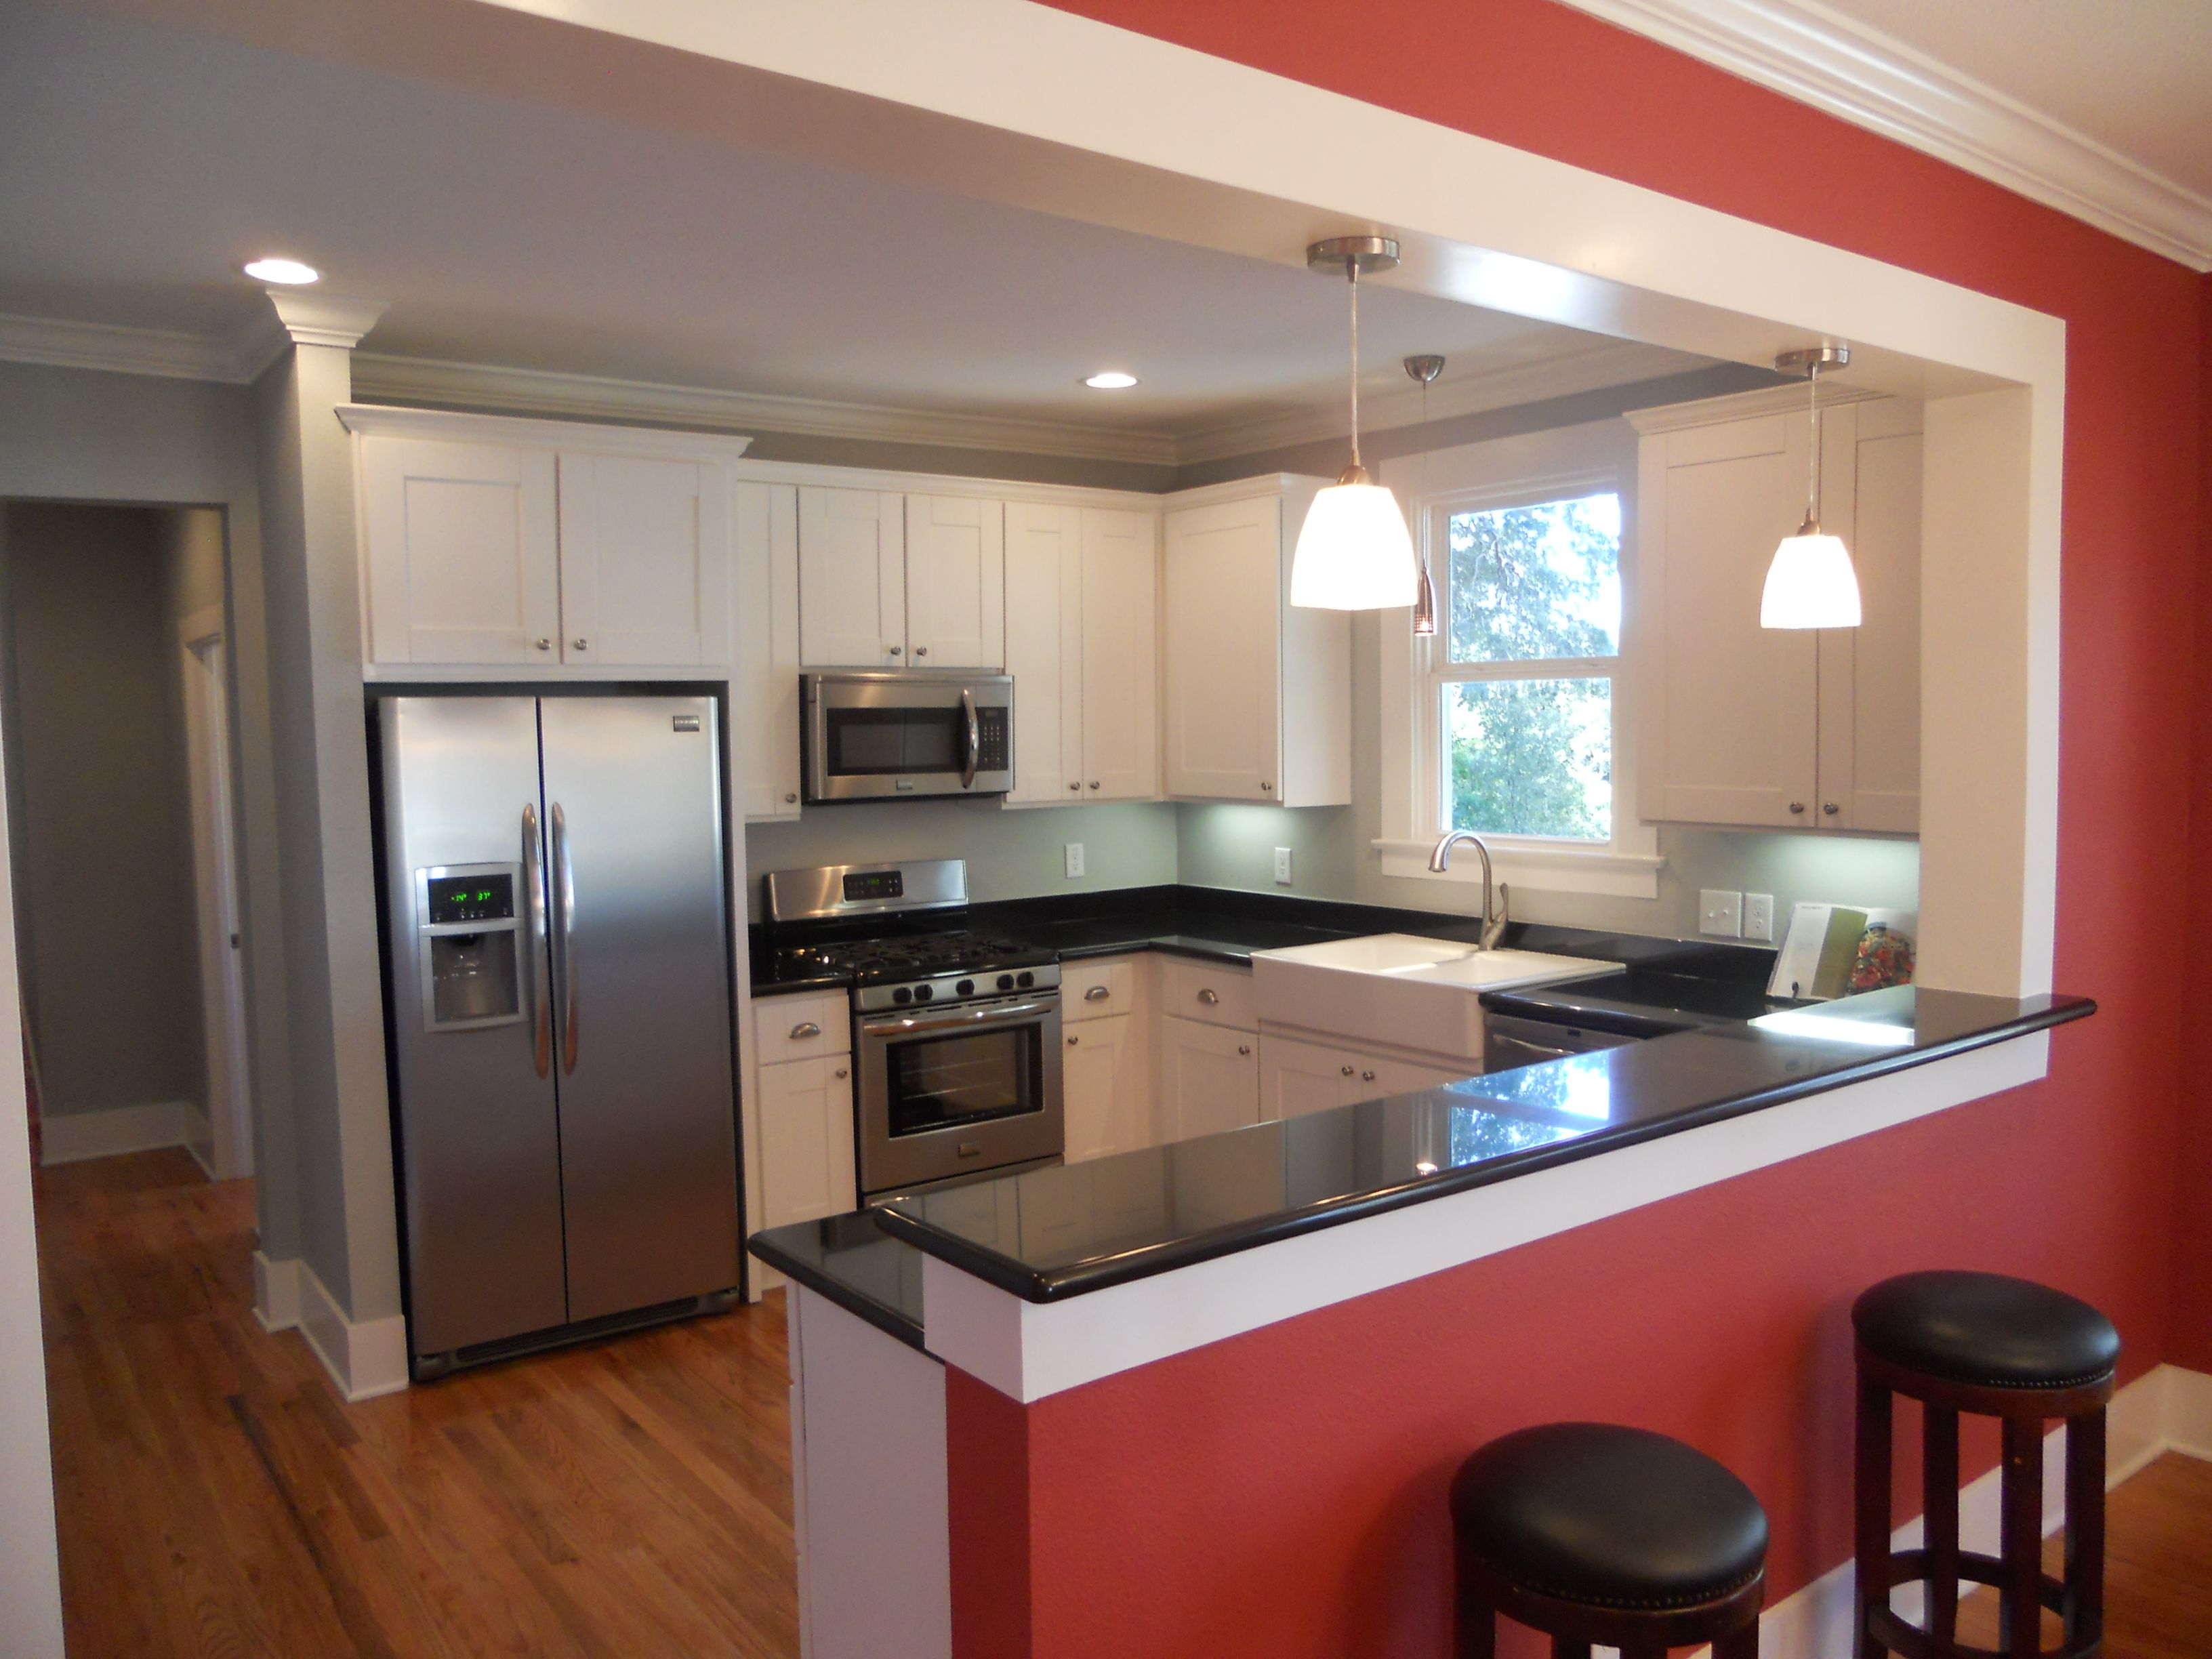 Pass through Kitchen to Living Room | Remodel Your Kitchen With A ...